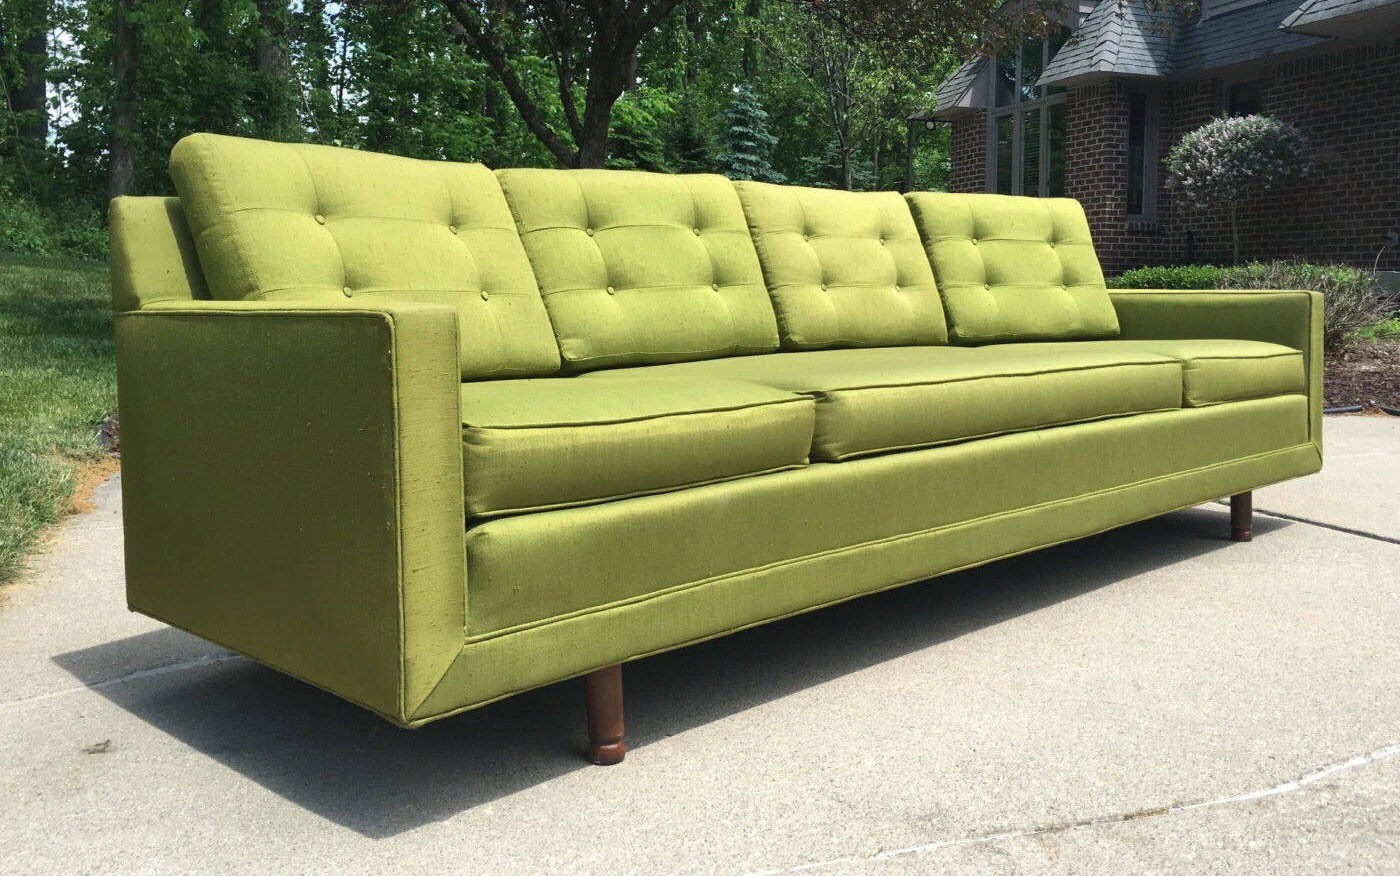 Vintage Couch Mid Century Modern Sofa Mid Century Sofa Vintage Sofa Retro Sofa Vintage Couch Mid Century Modern Couch Retro Couch Mid Century Couch